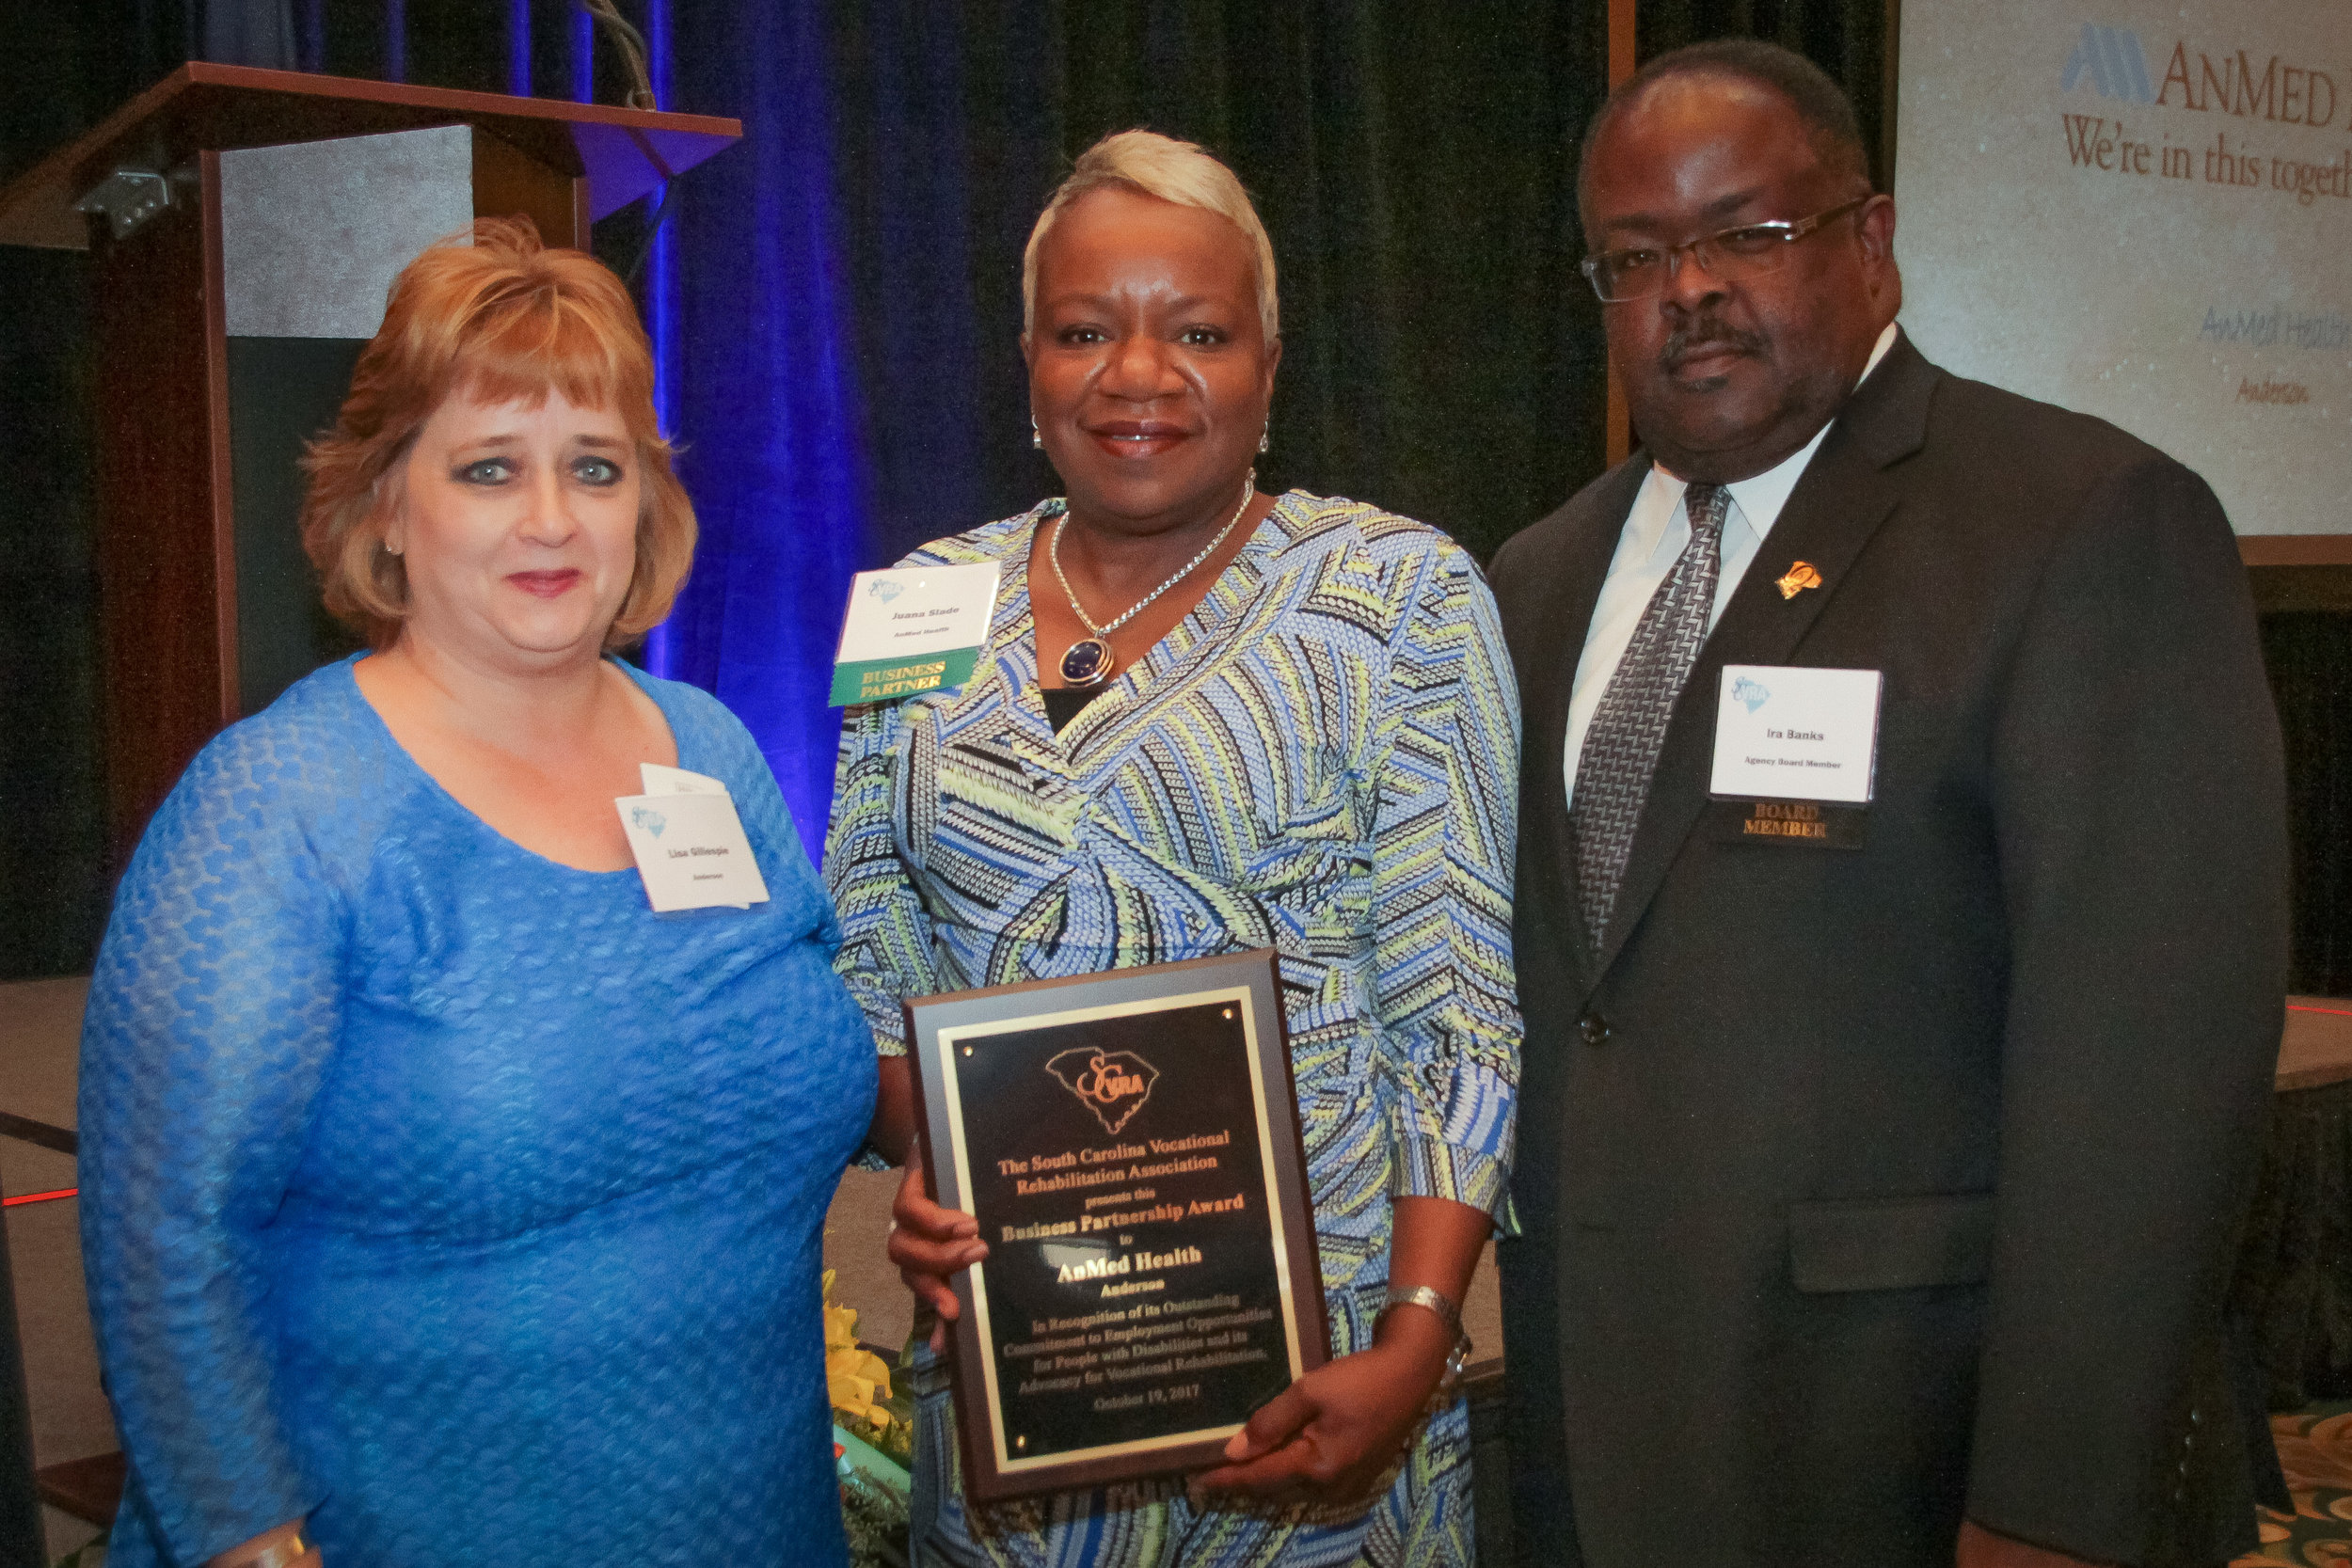 Juana Slade (center), Chief Diversity Officer at AnMed, receives the SCVRA Business Partnership Award from Lisa Gillespie (left), Anderson Area Supervisor, and Ira Banks, SC State Agency of Vocational Rehabilitation Board Member.